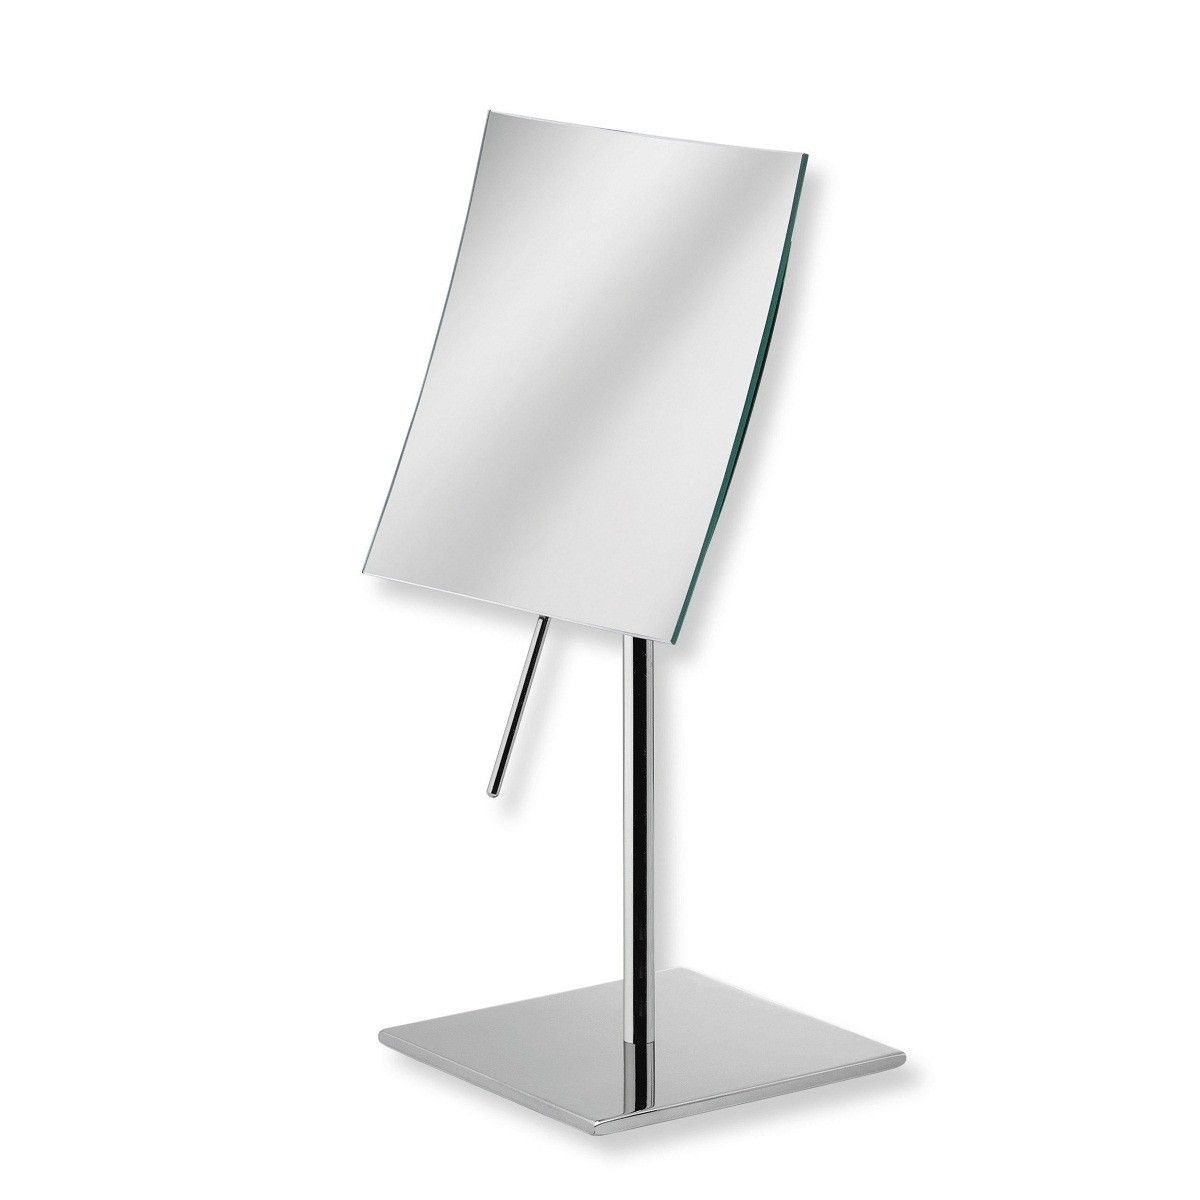 WS Bath Collections Mevedo 5593 Magnifying Mirror 3x From the Mevedo ...